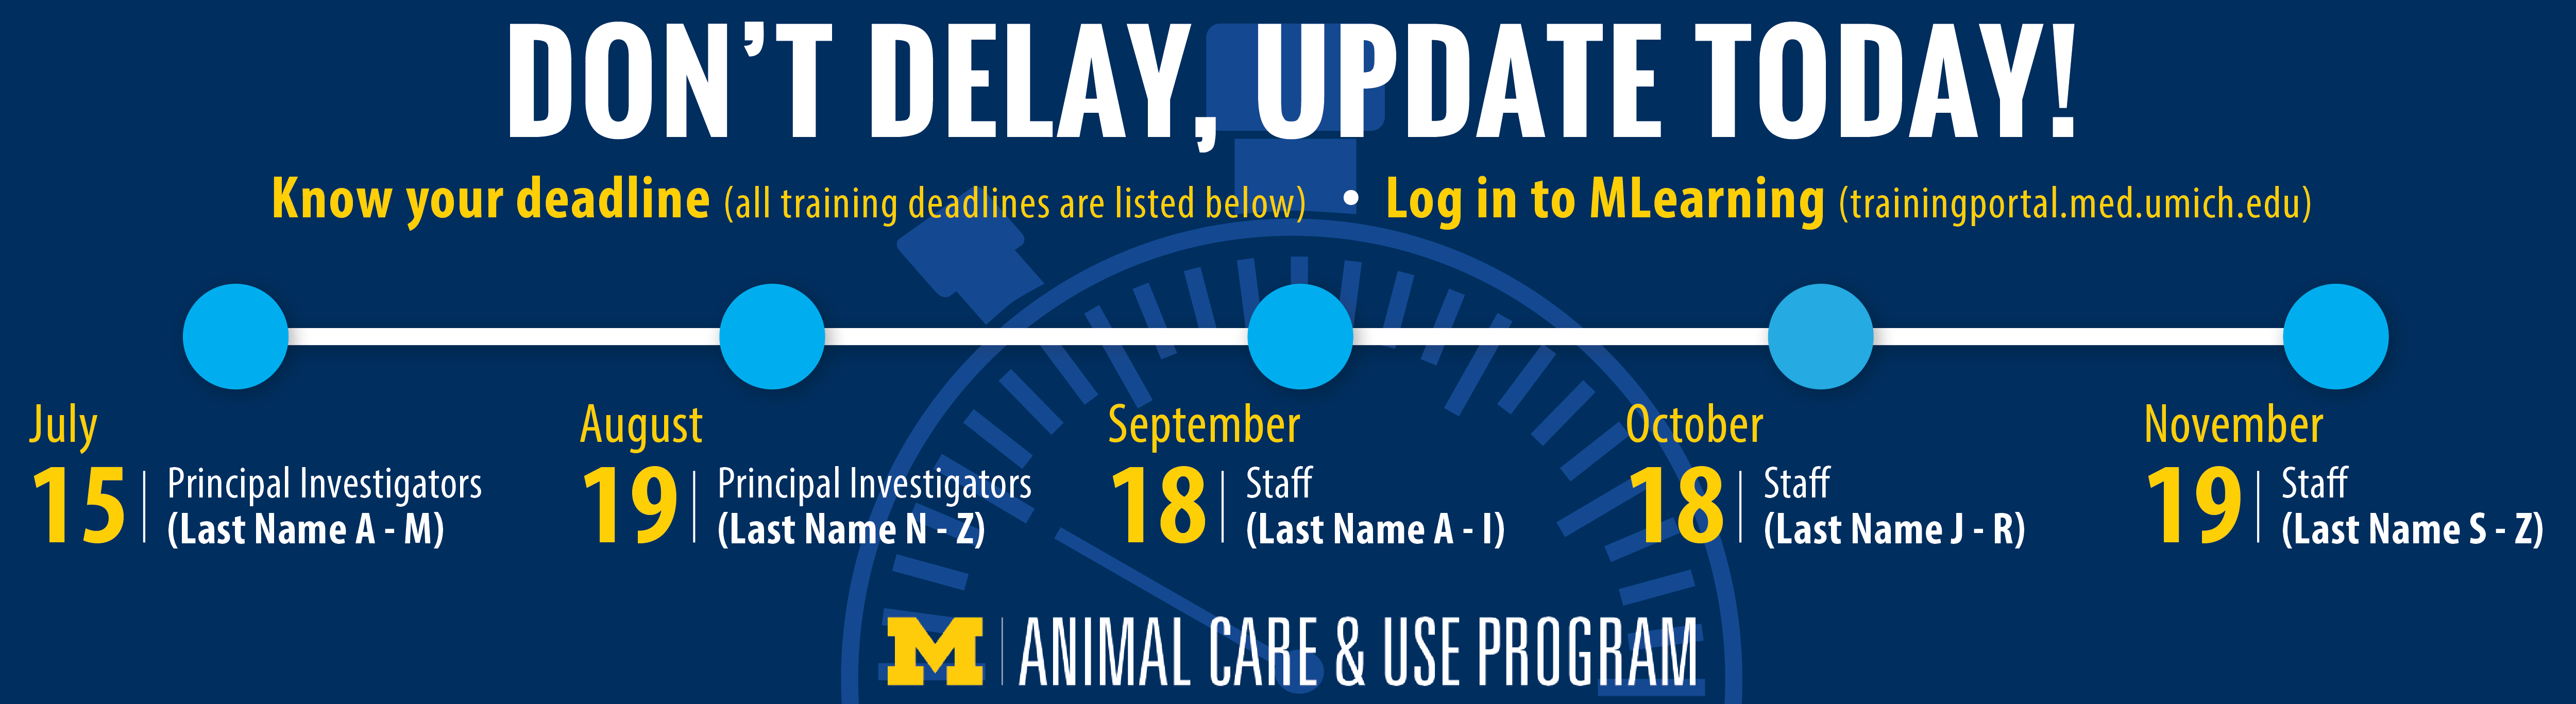 Infographic outlining deadlines for new animal care and use training requirement